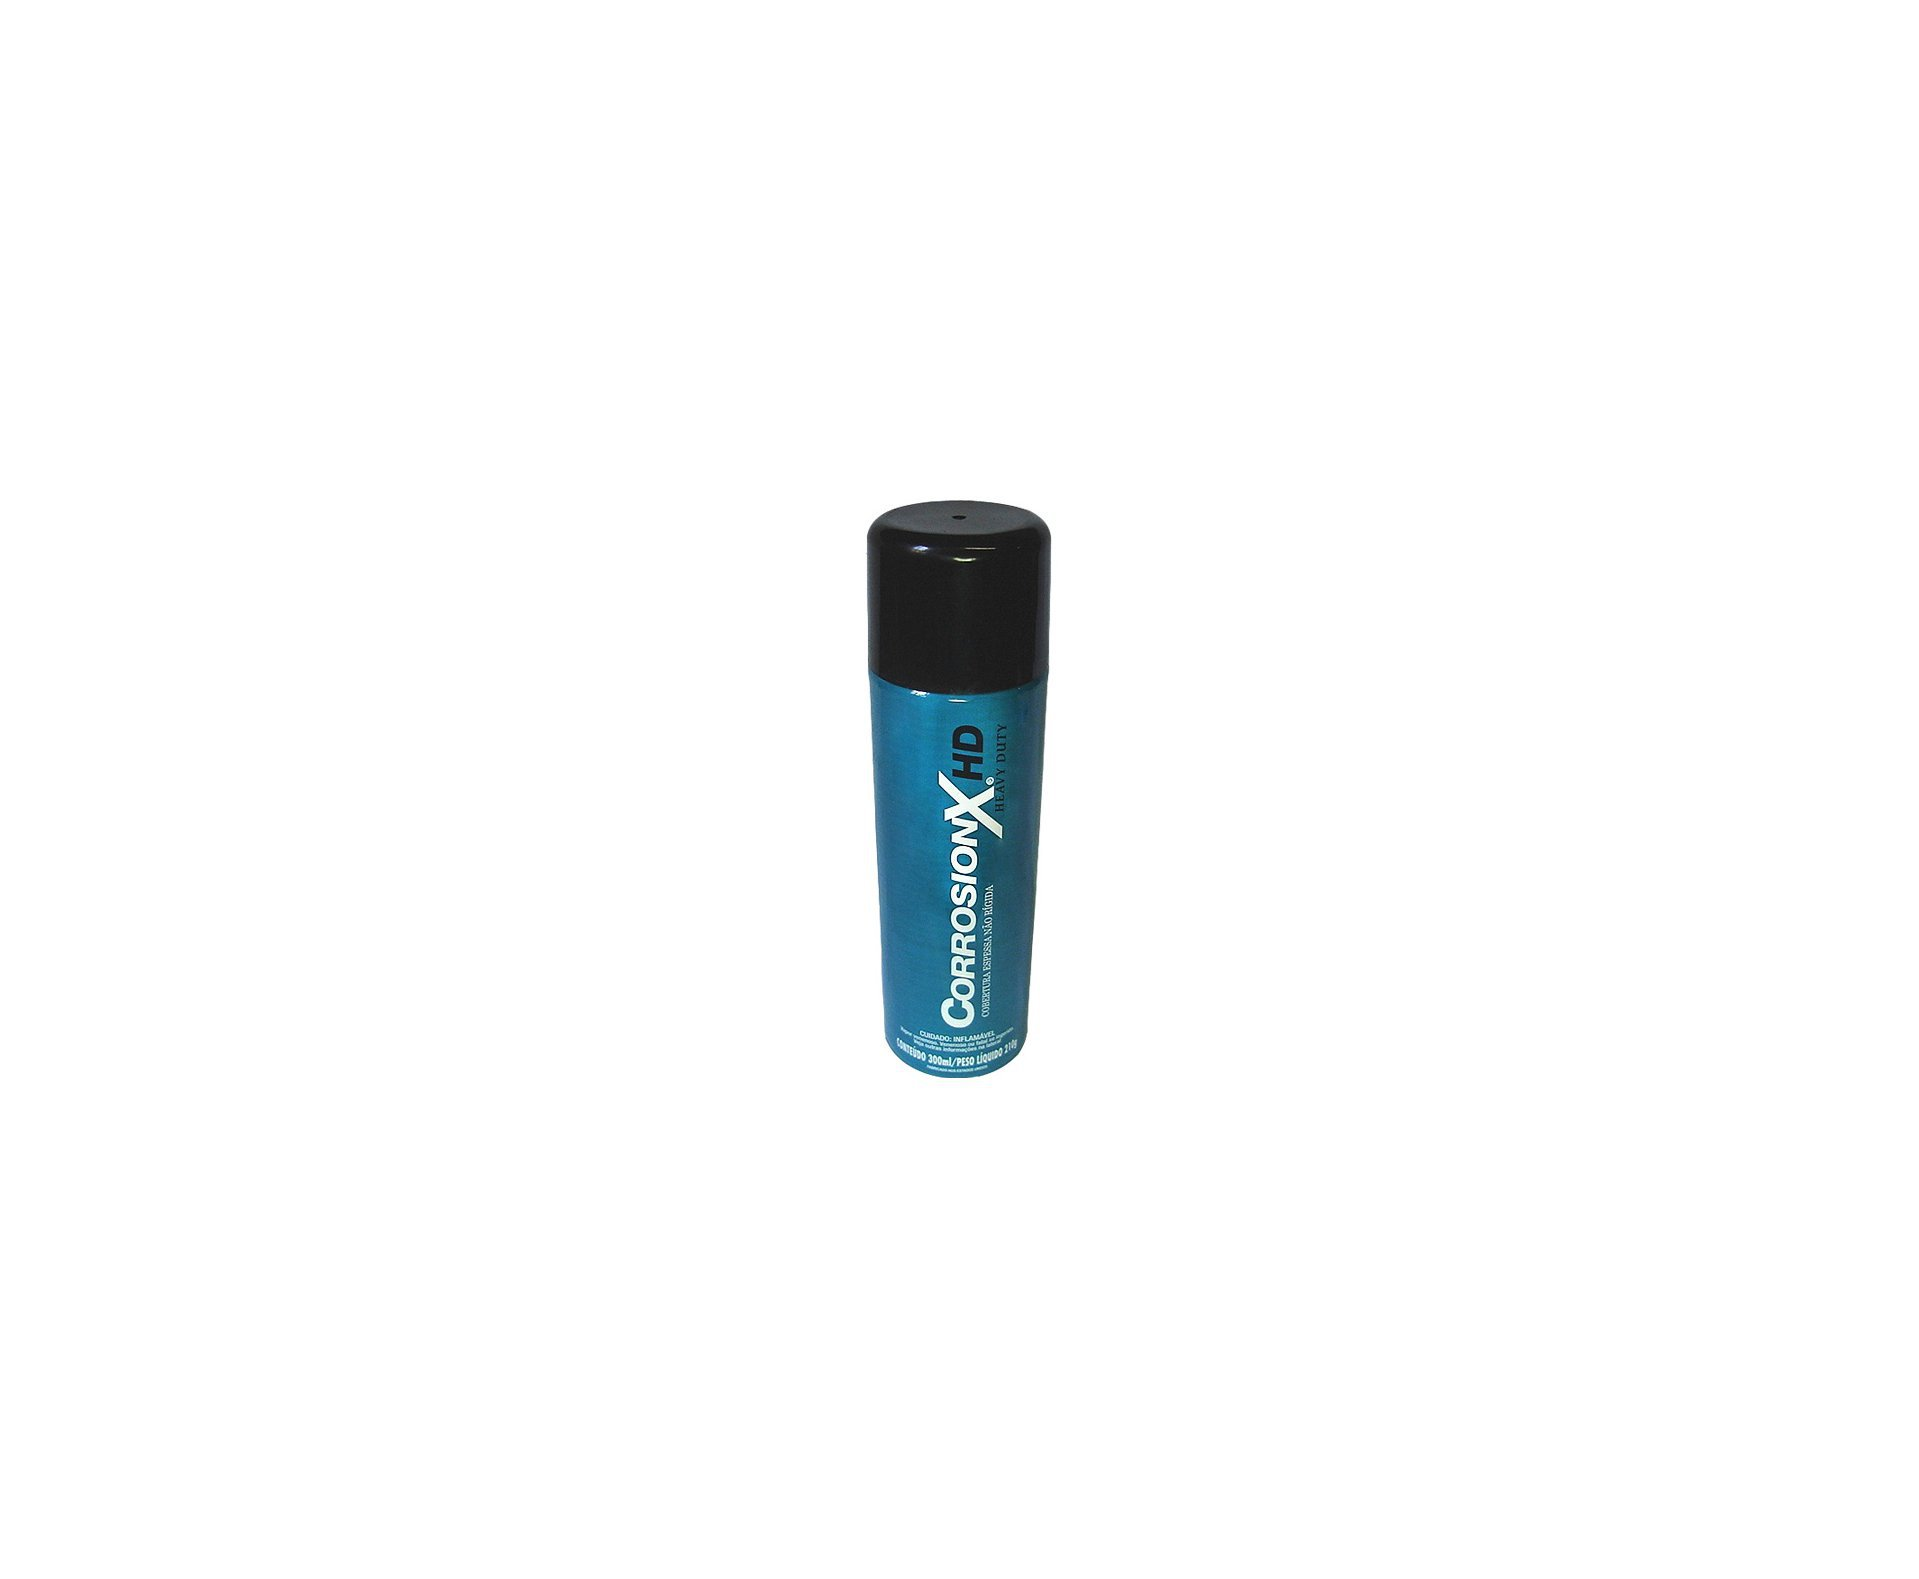 Lubrificante/anticorrosivo Corrosionx Heavy Duty - Aerosol - 300ml